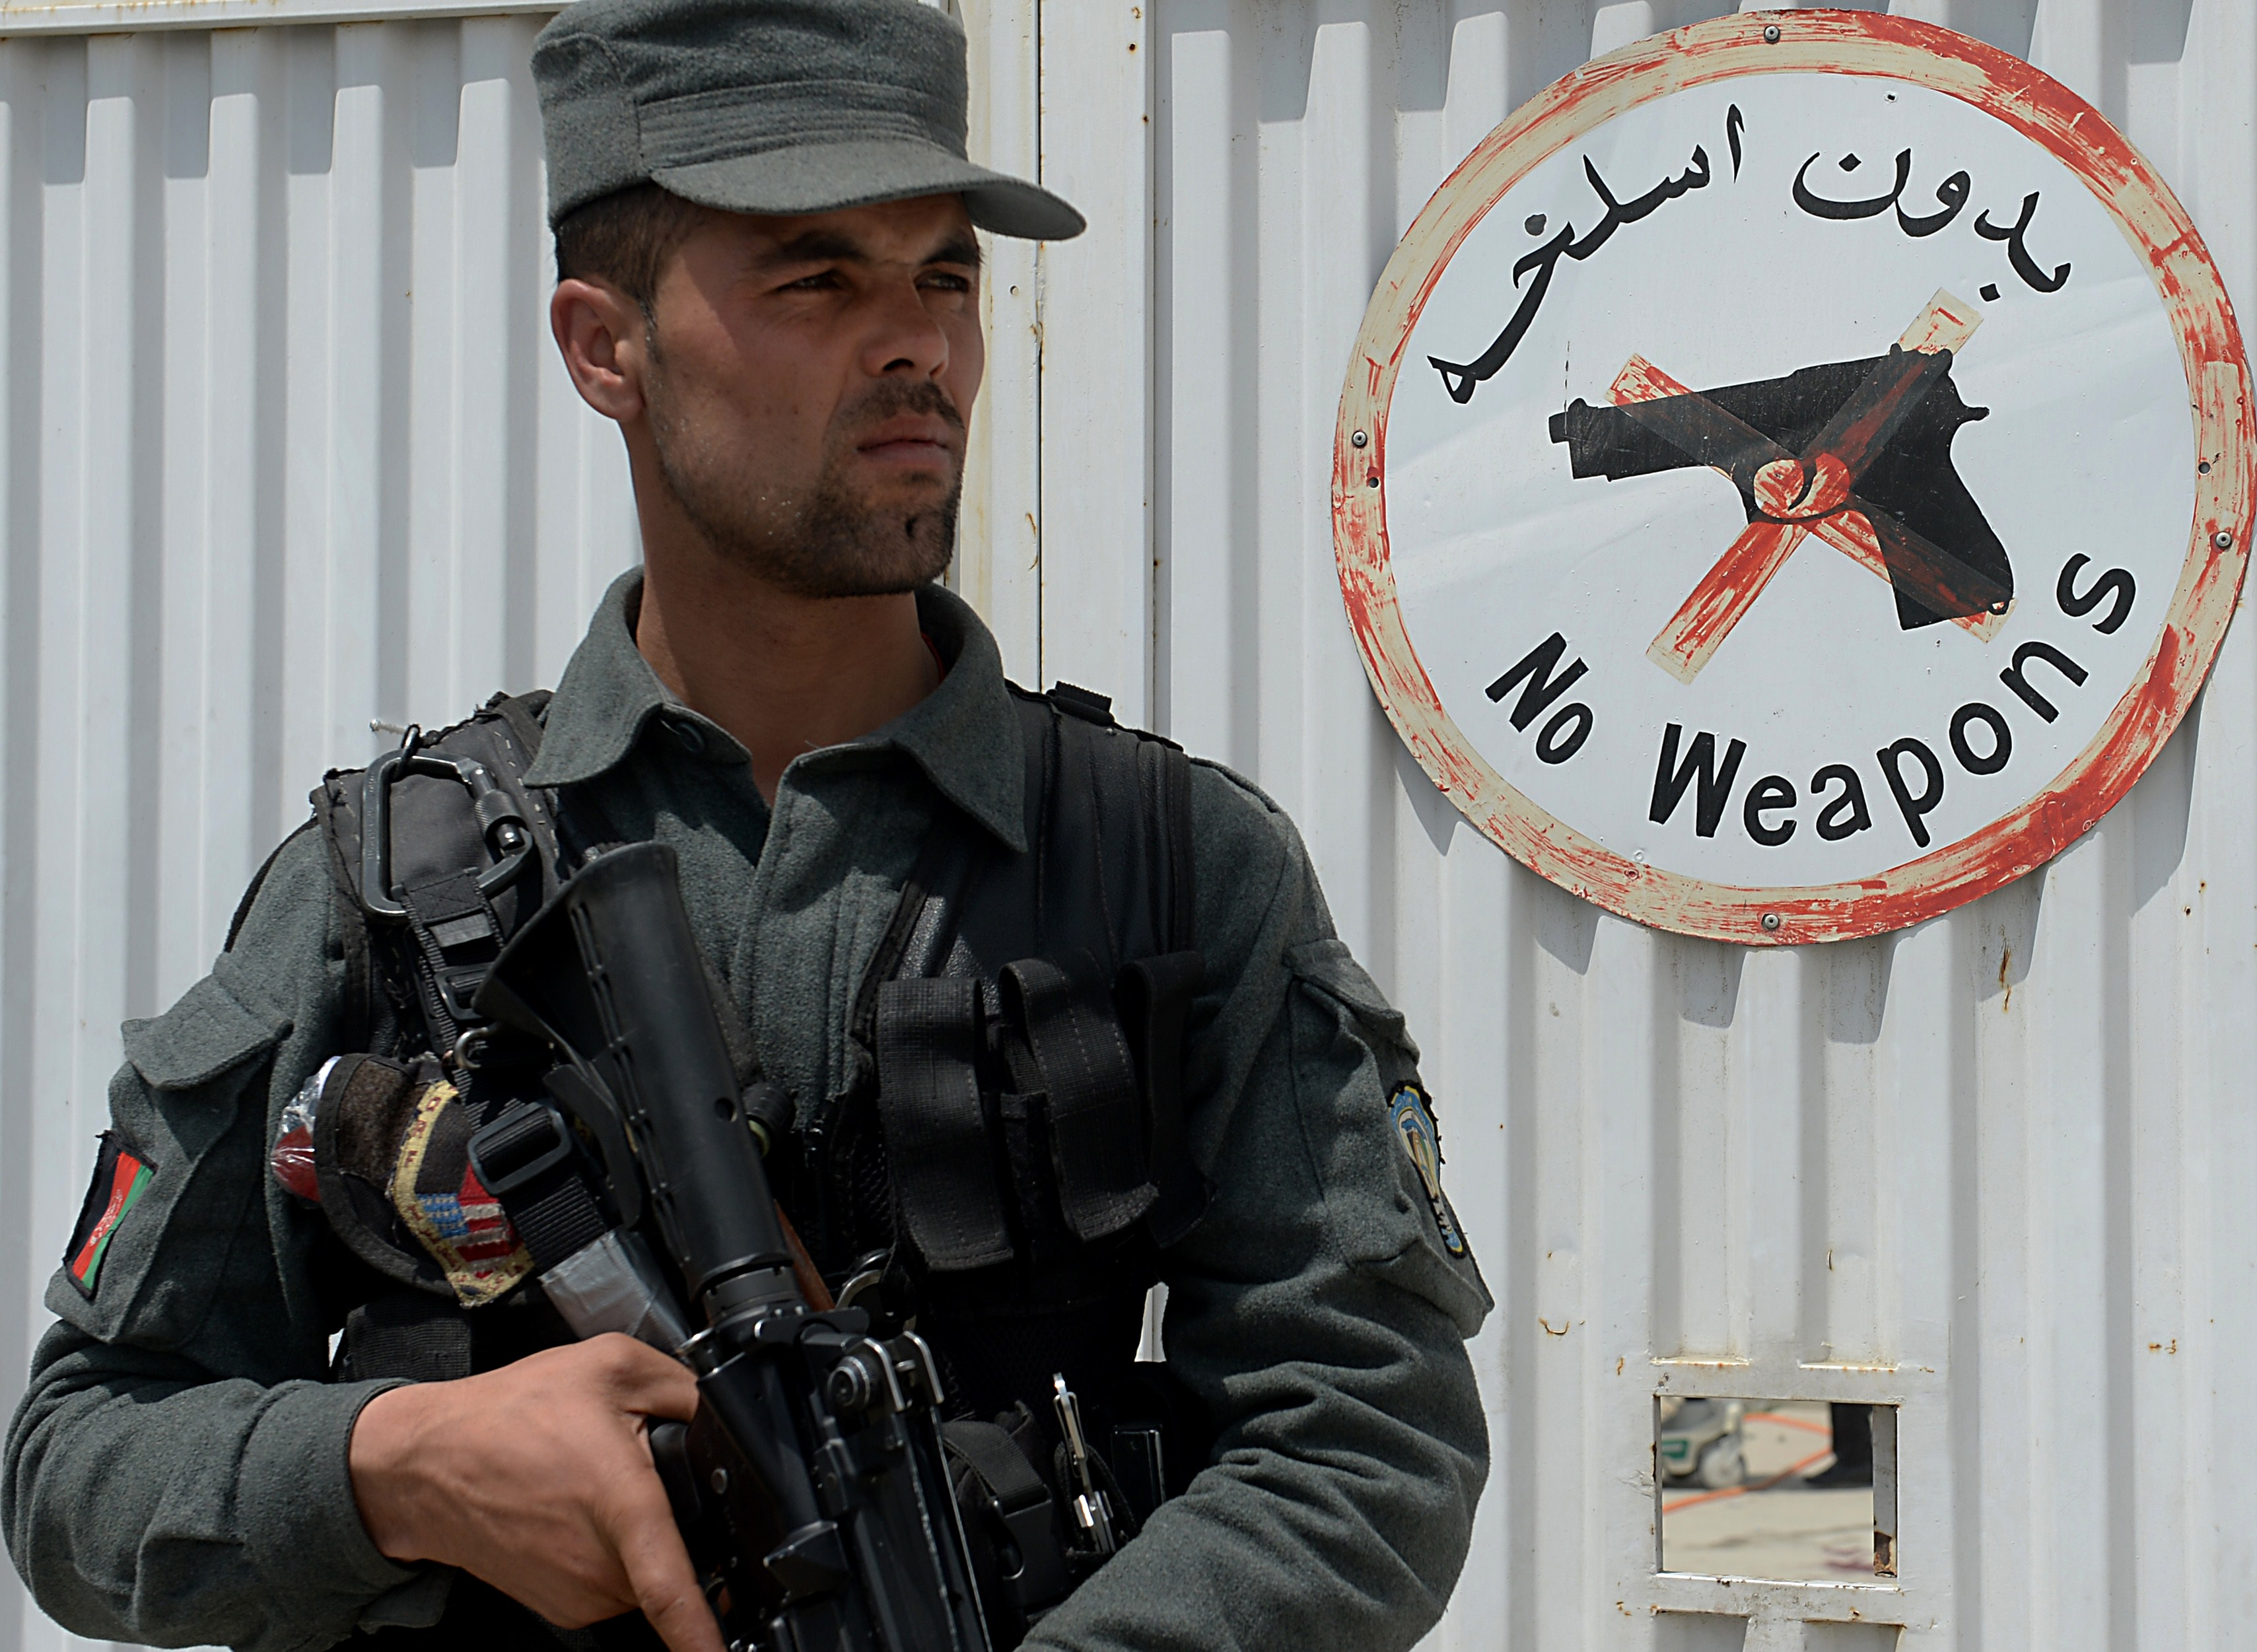 An Afghan policeman outside Kabul's Cure hospital, where another Afghan policeman killed three U.S. doctors Thursday.